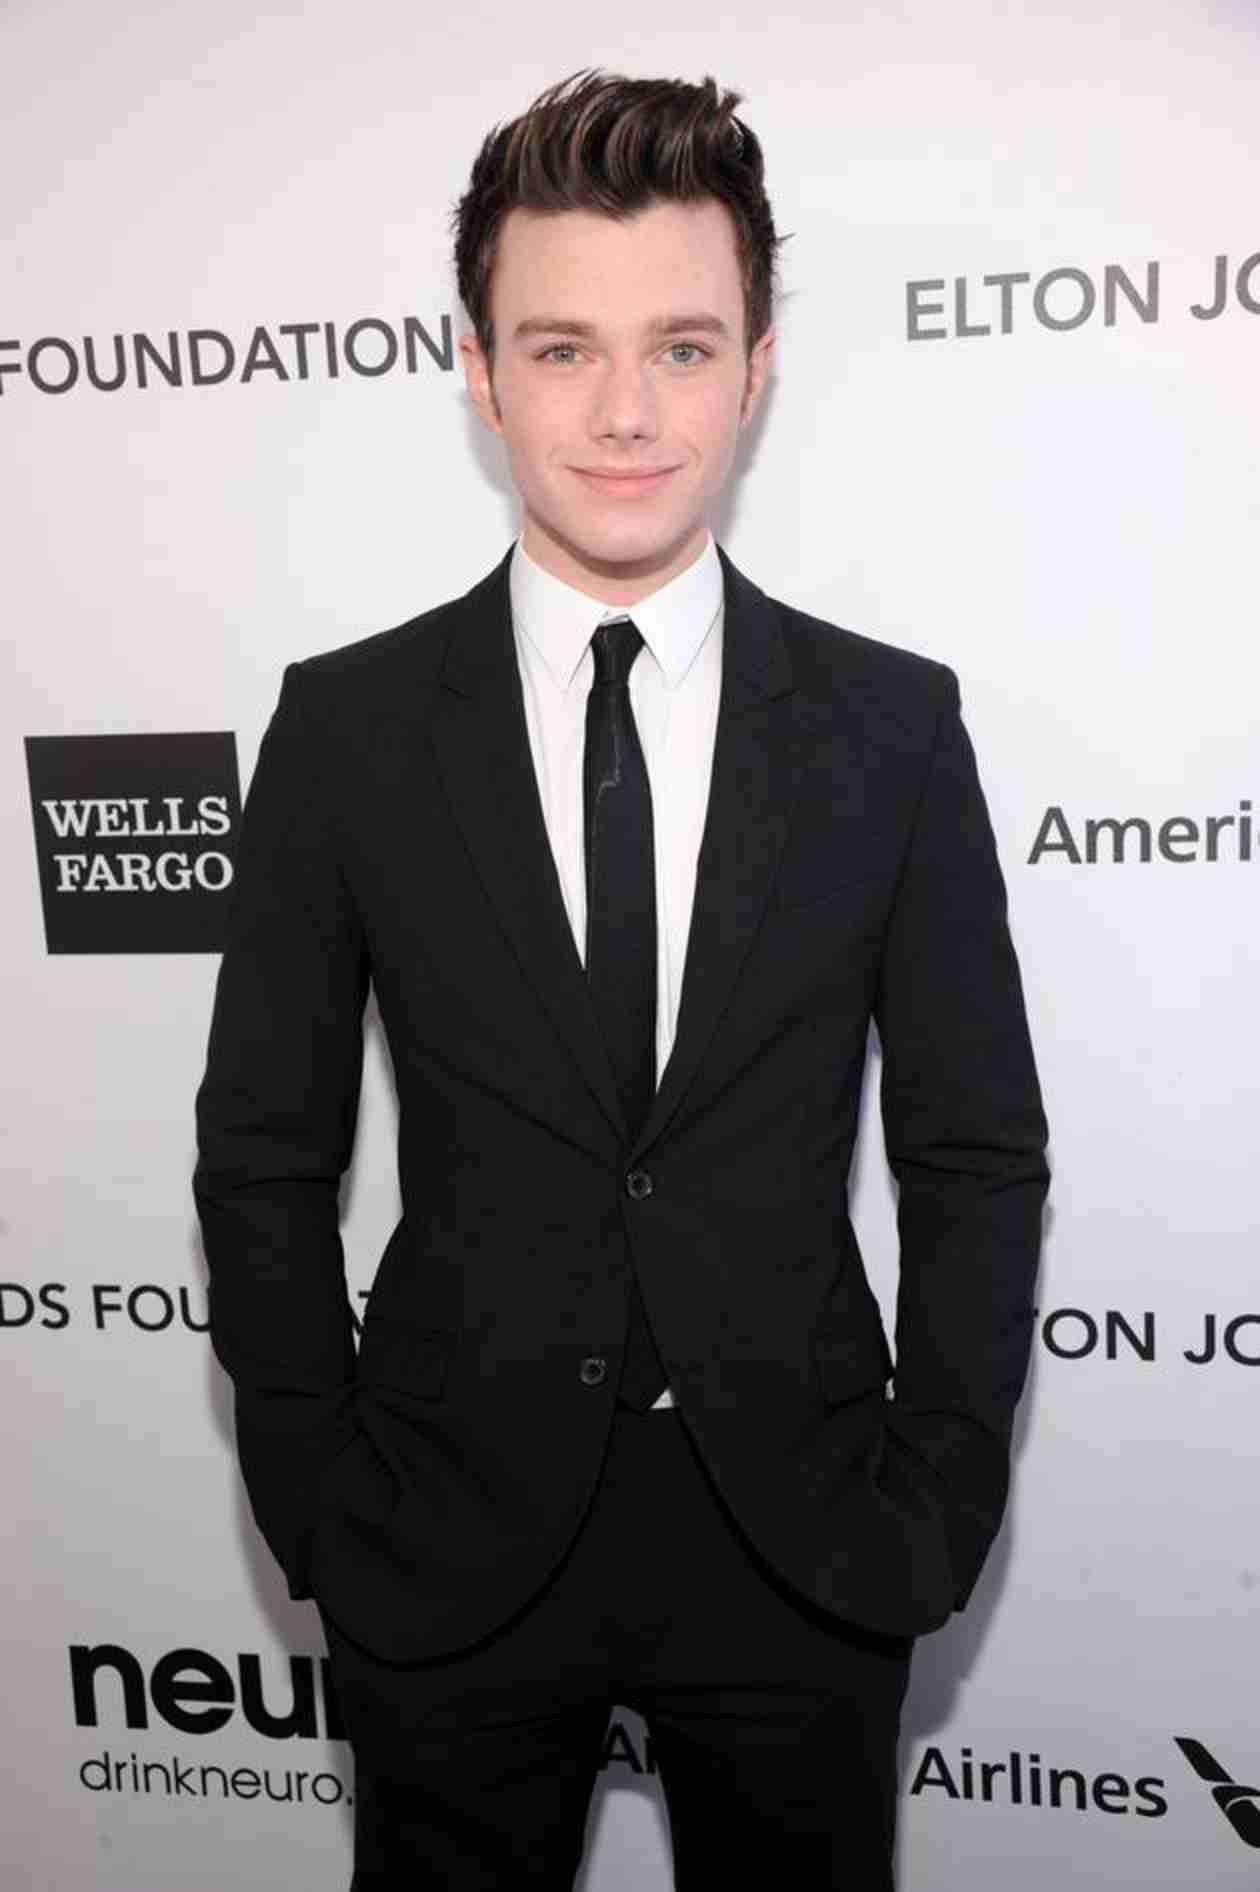 Chris Colfer to Appear on The Tonight Show Starring Jimmy Fallon on July 8!